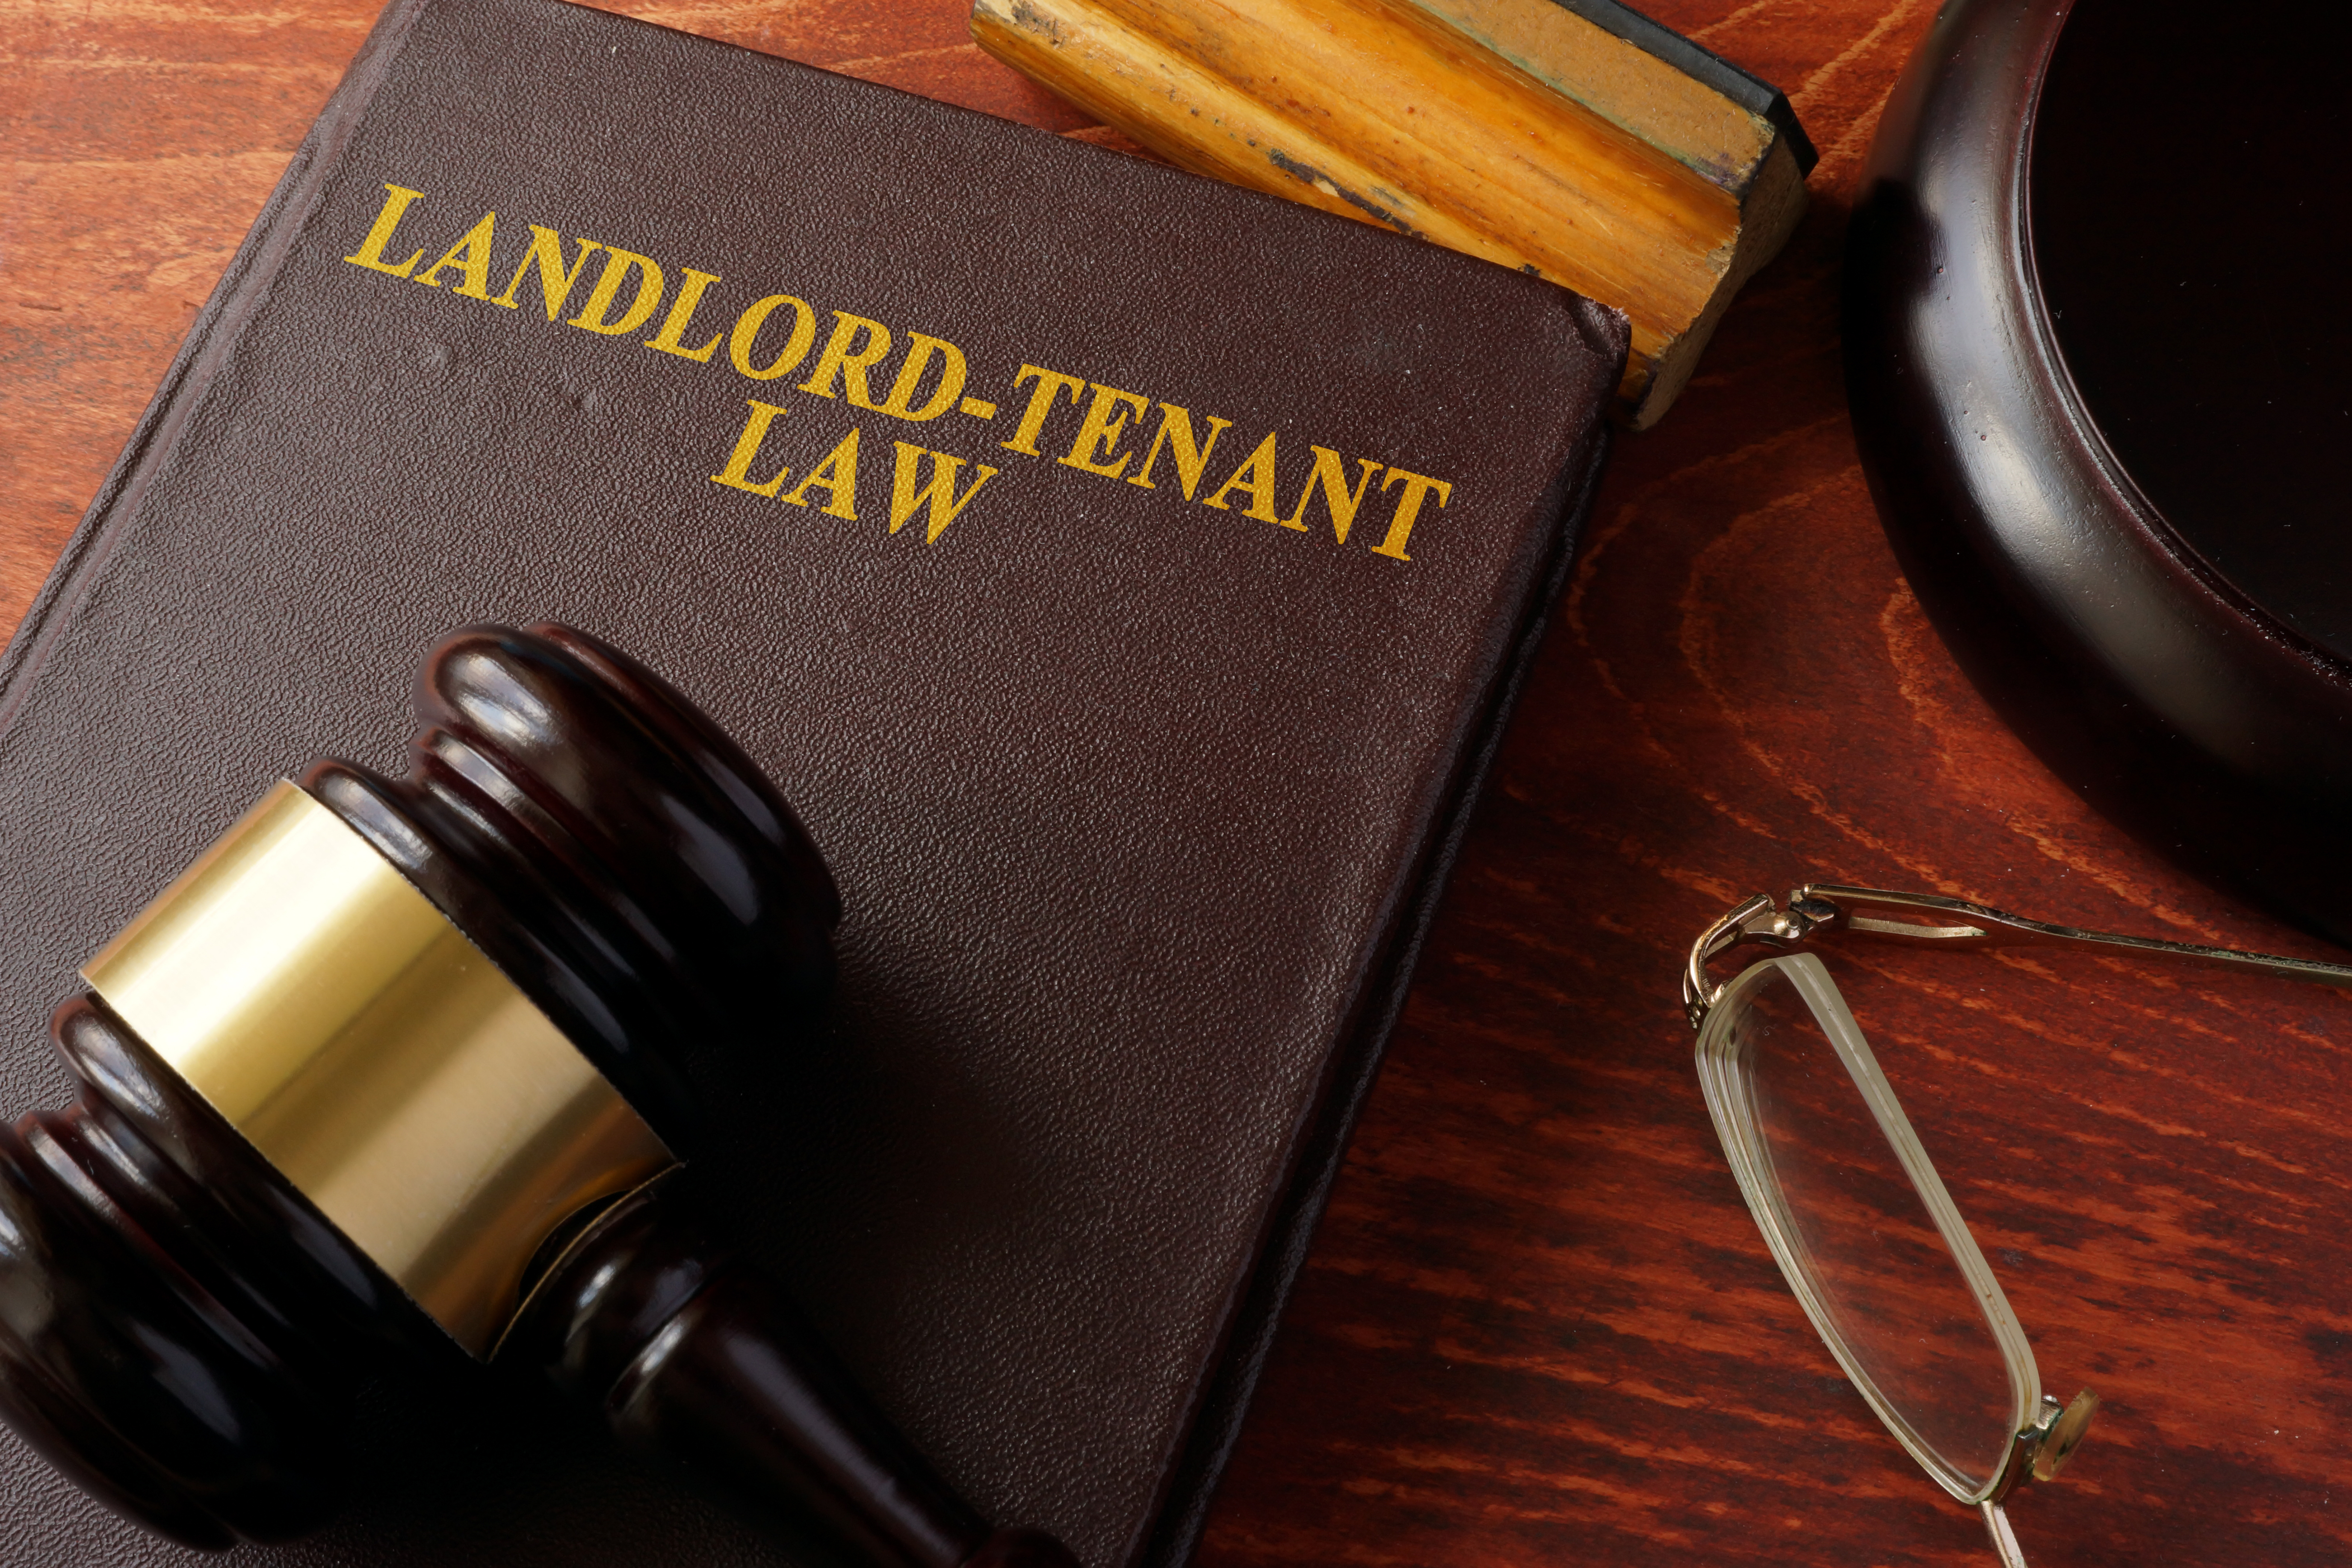 Bill could empower tenants and expose rogue landlords